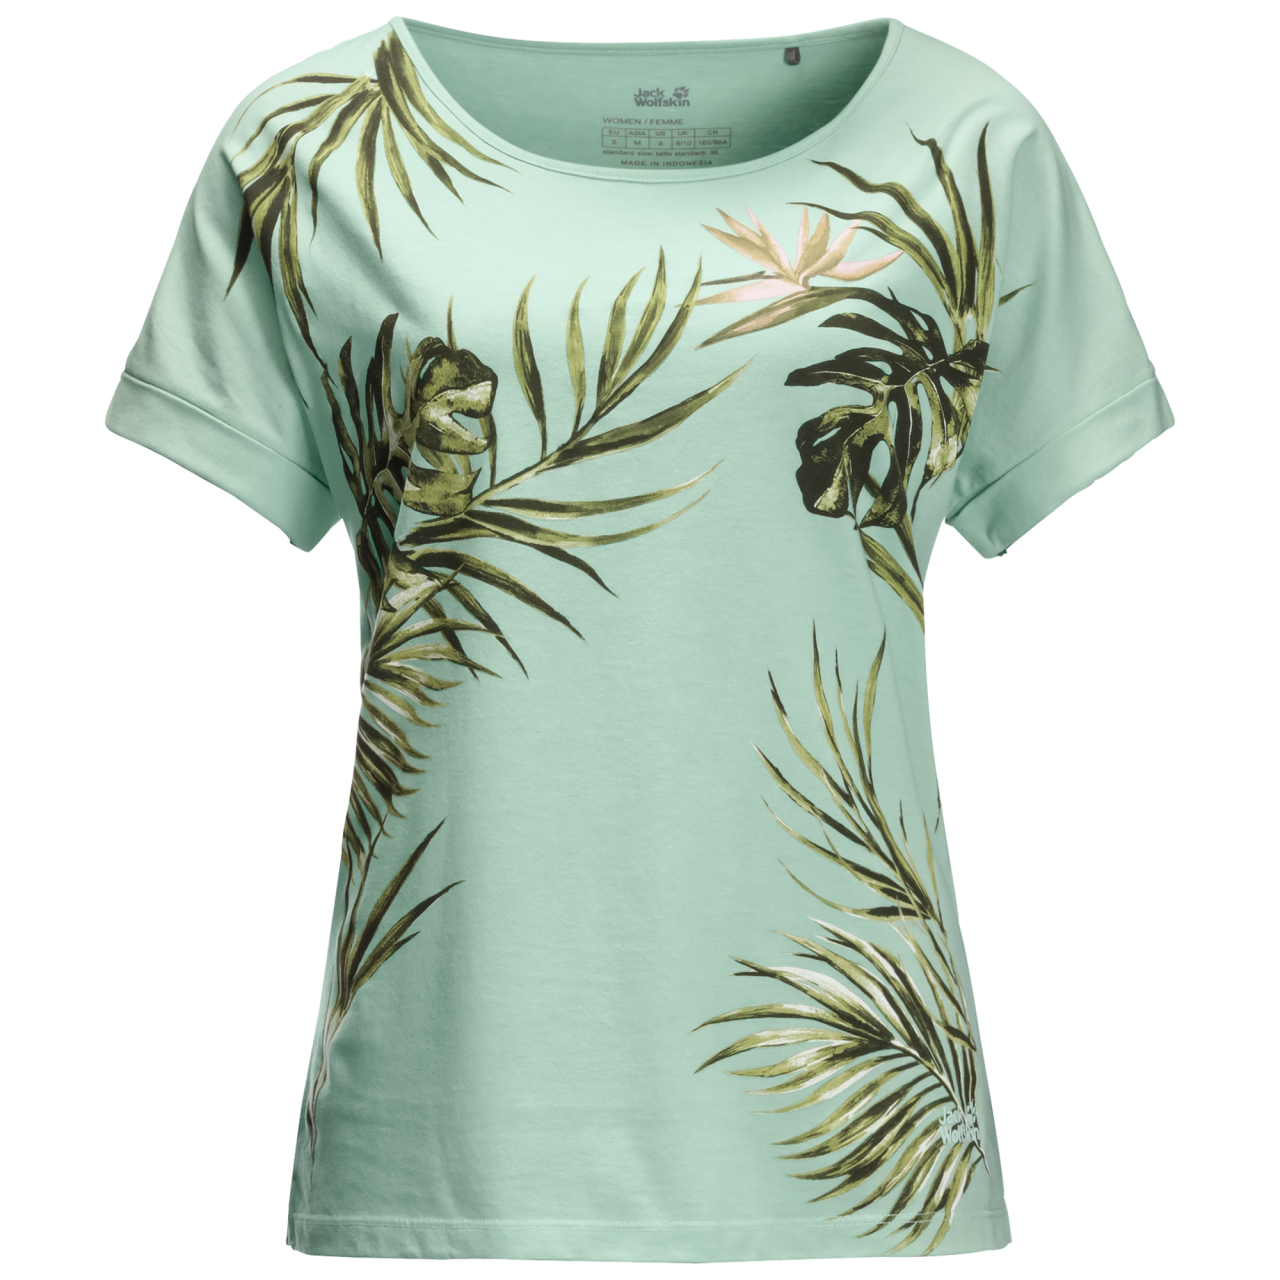 Jack Wolfskin Tropical Leaf T-Shirt Dames Groen